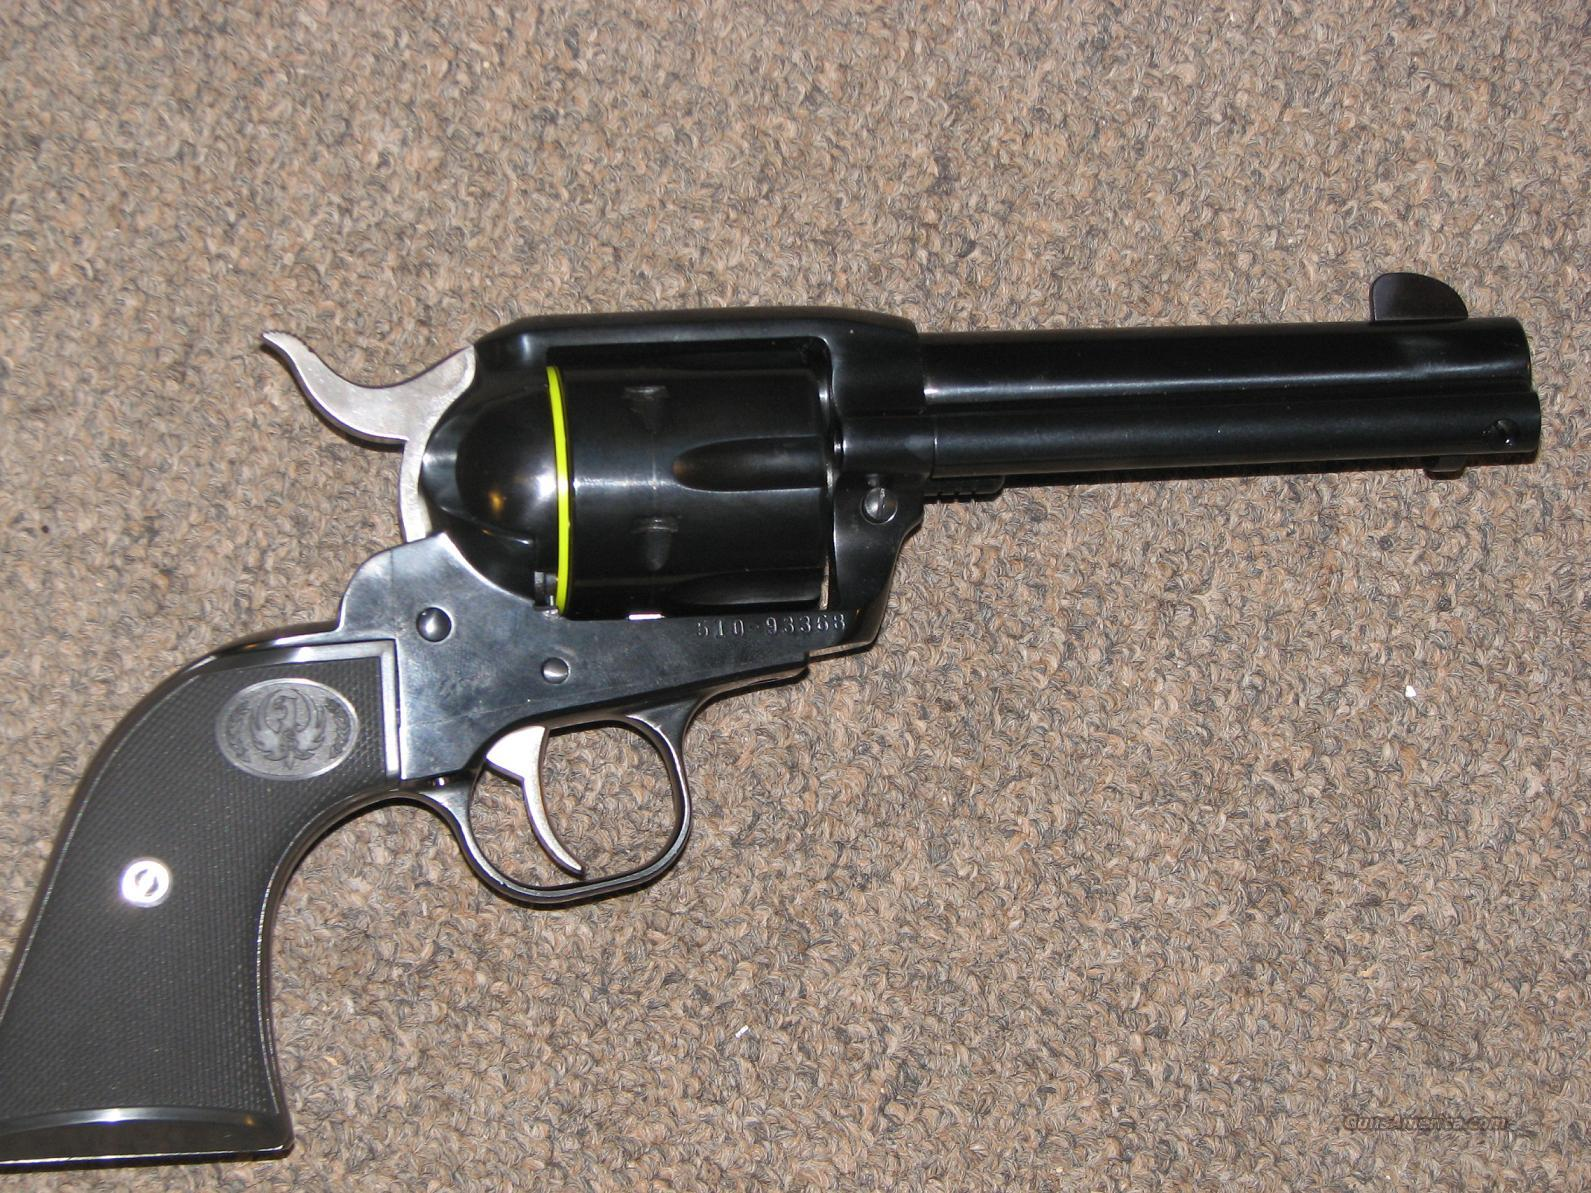 RUGER NEW VAQUERO .357 MAG - NEW!  Guns > Pistols > Ruger Single Action Revolvers > Cowboy Action